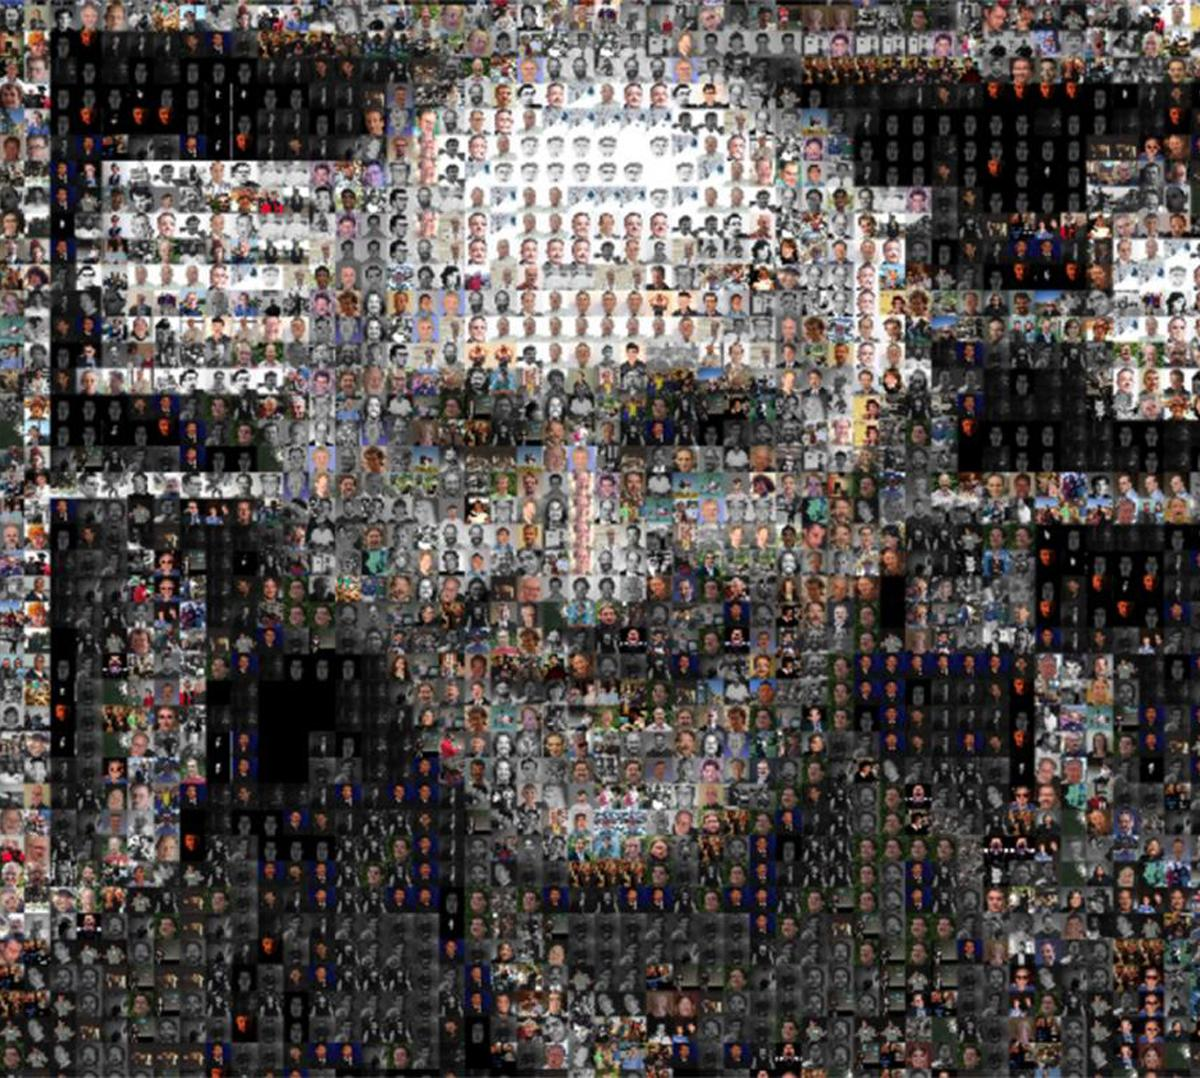 a composite image of a man's face from many former students